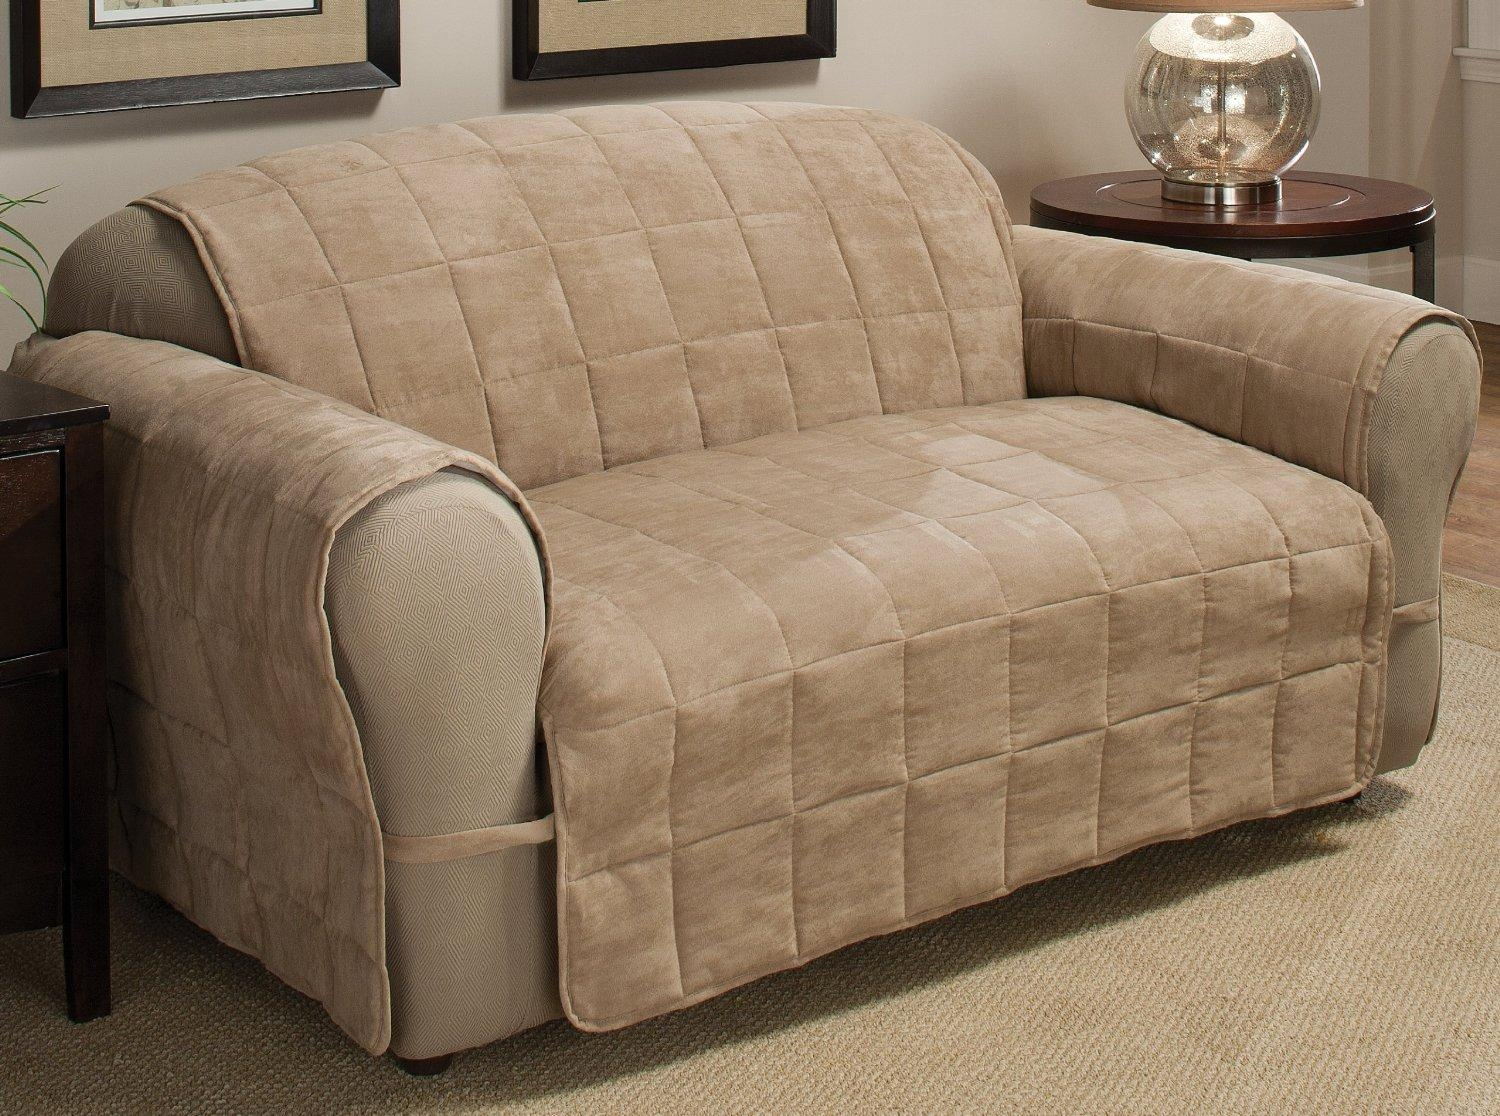 Sofas Center : Pet Furniture Covers For Sofas Staggering Images Inside Dog Sofas And Chairs (Image 18 of 20)